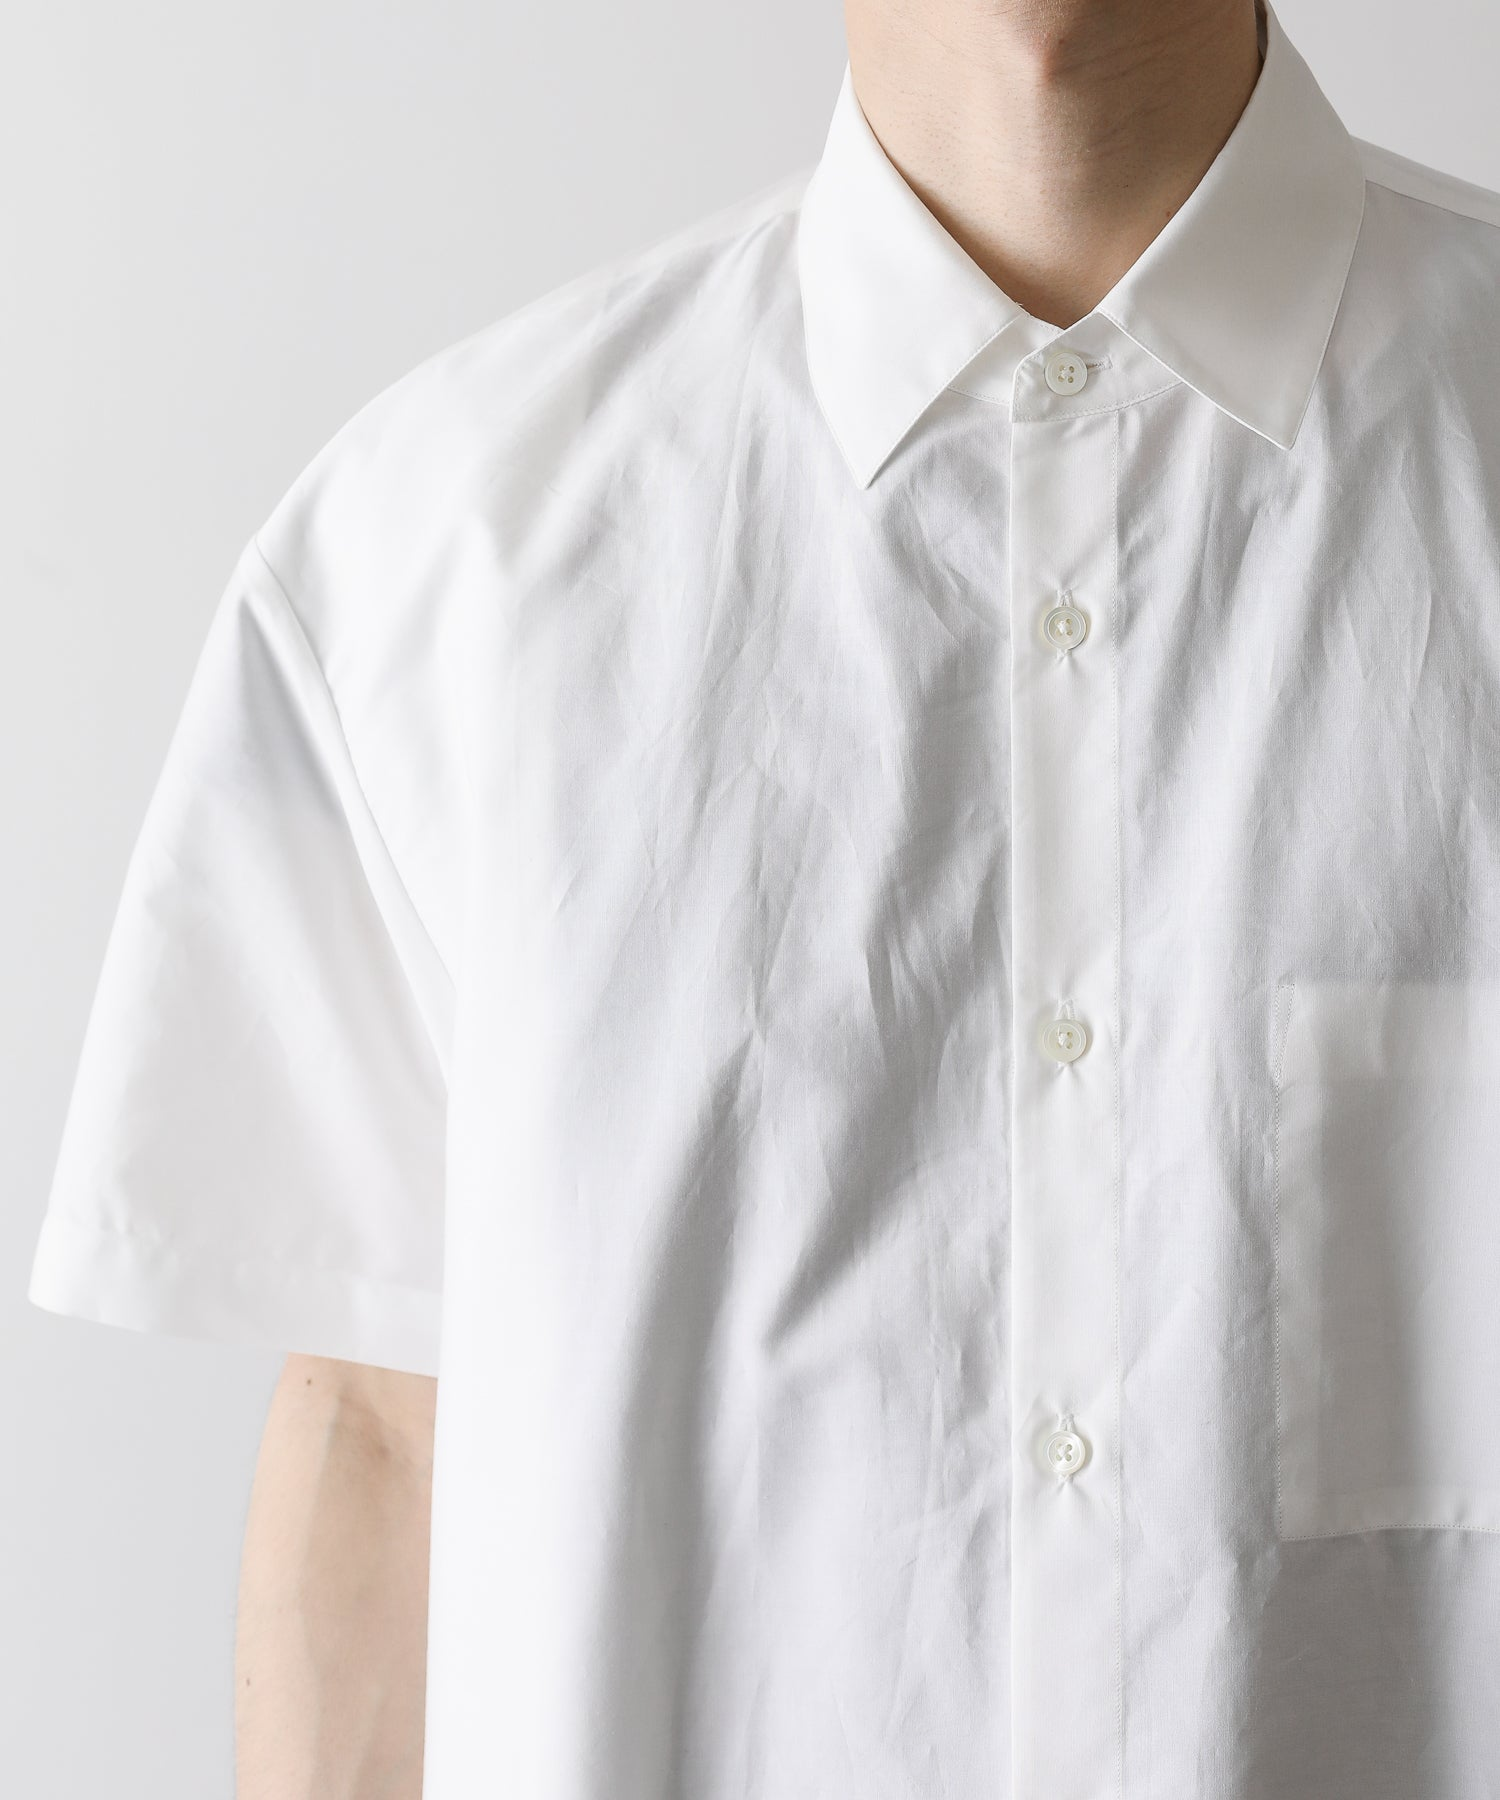 stein シュタイン OVERSIZED FOLDED SS SHIRTS WHITE  st.251 session 通販